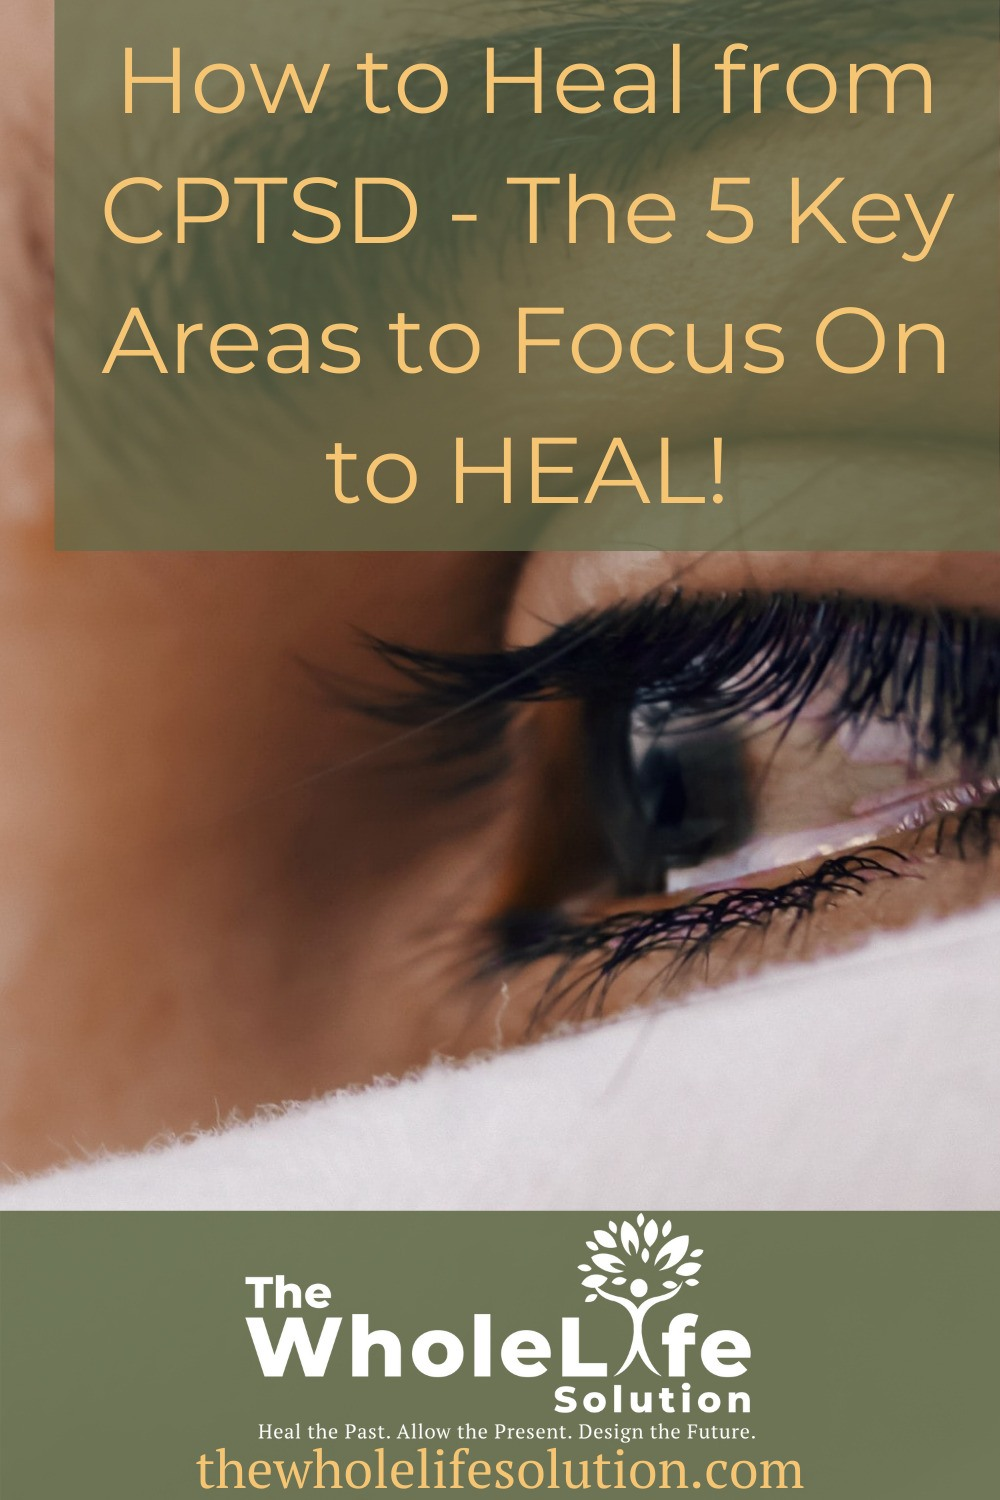 How to Heal from CPTSD - The 5 Key Areas to Focus On to HEAL!